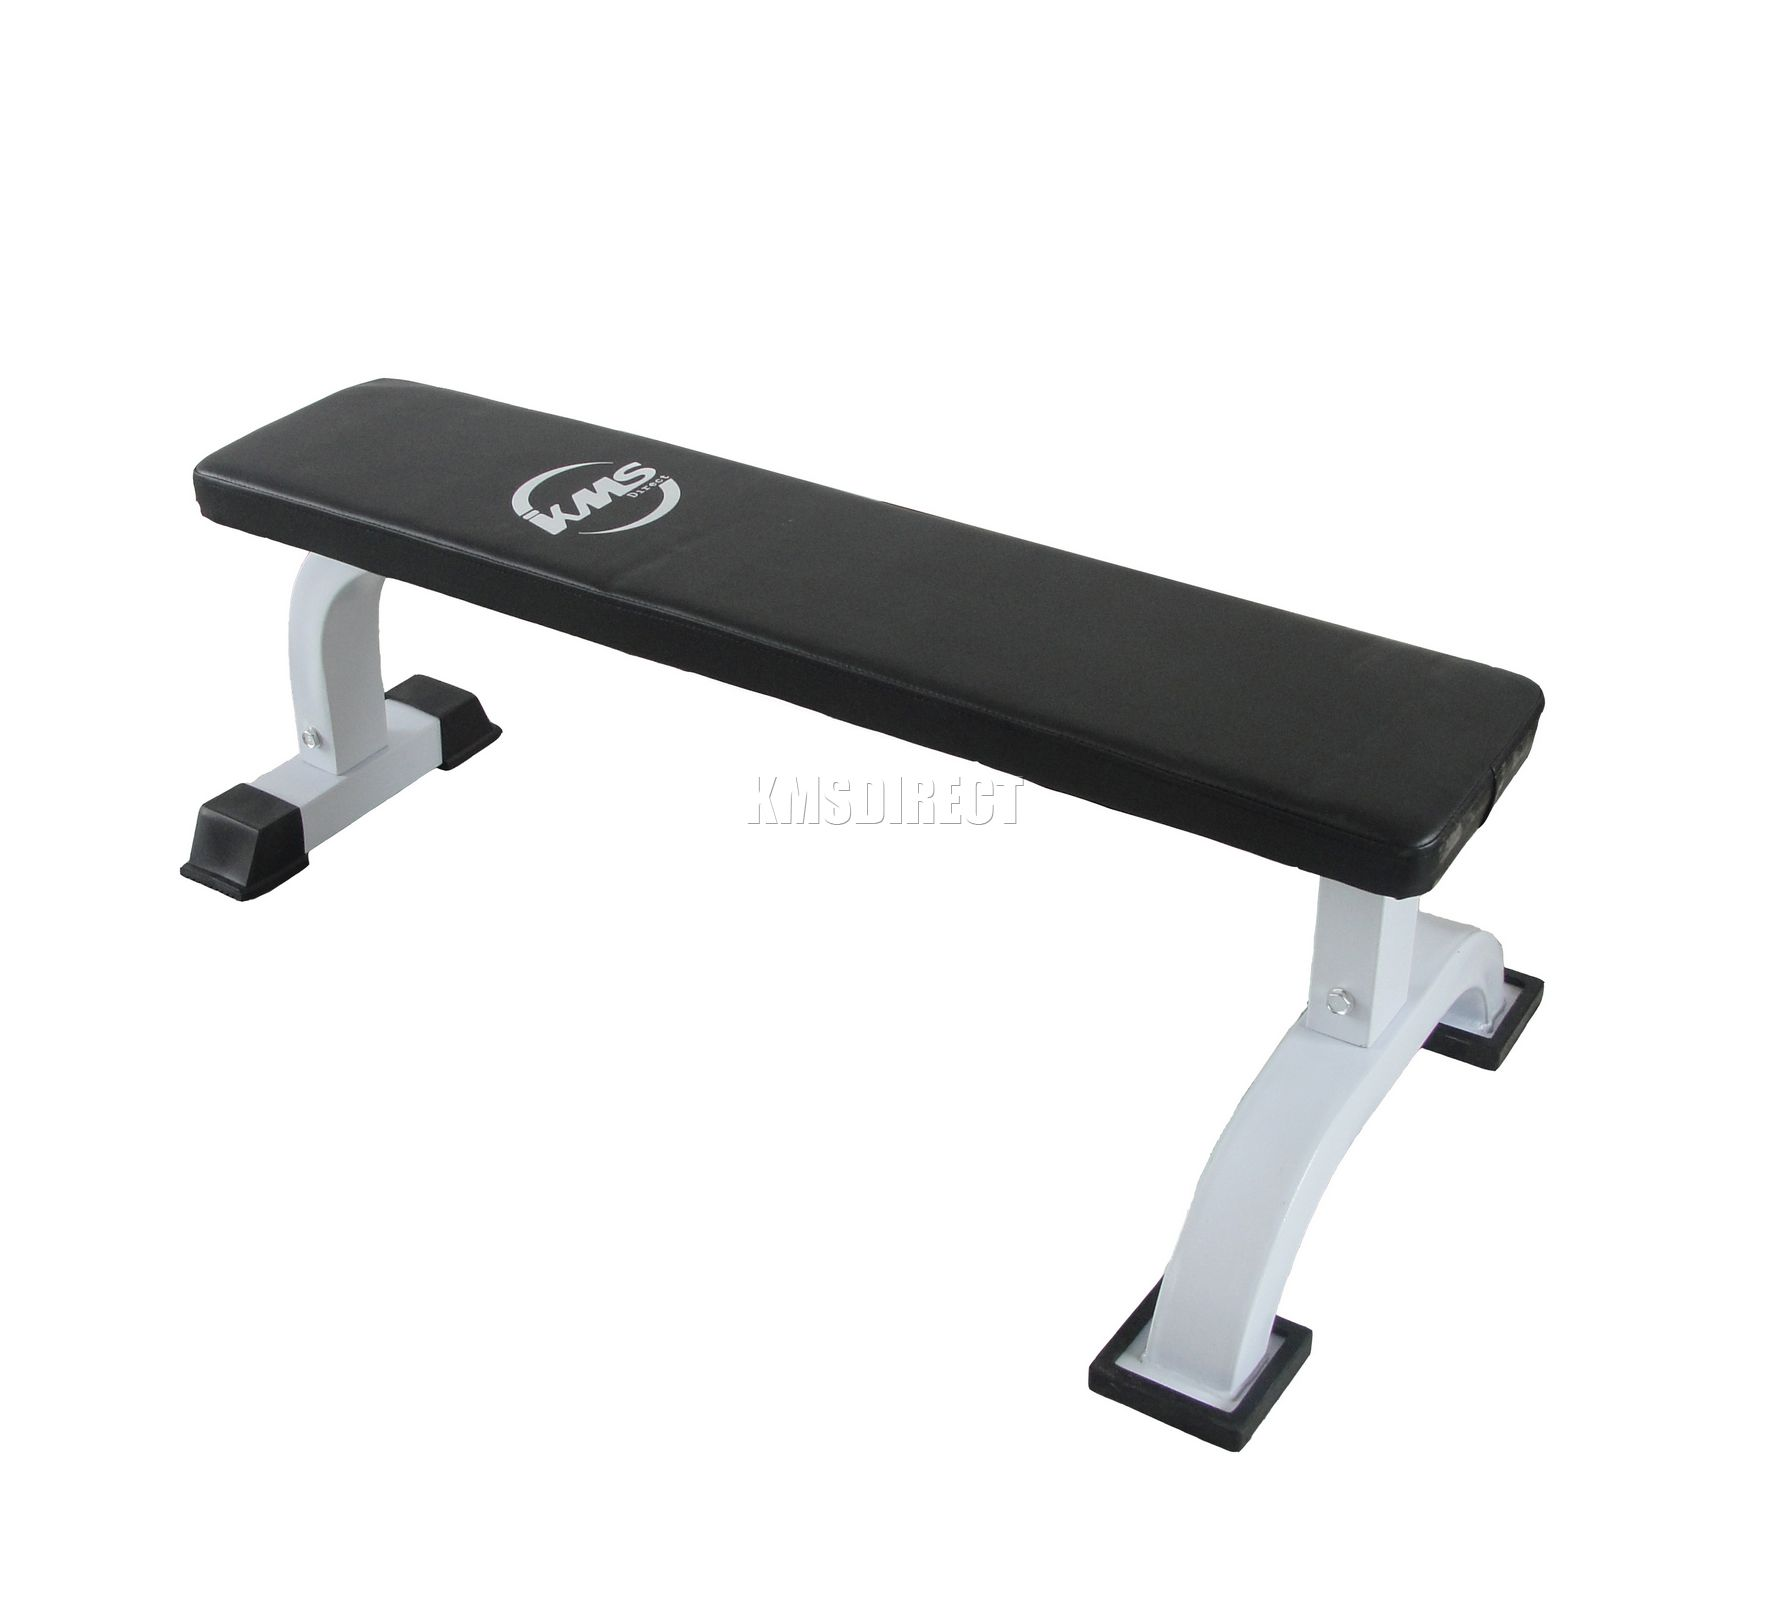 Steel Fitness Flat Bench Weight Lifting Utility Dumbbell Press Abs Gym Workout